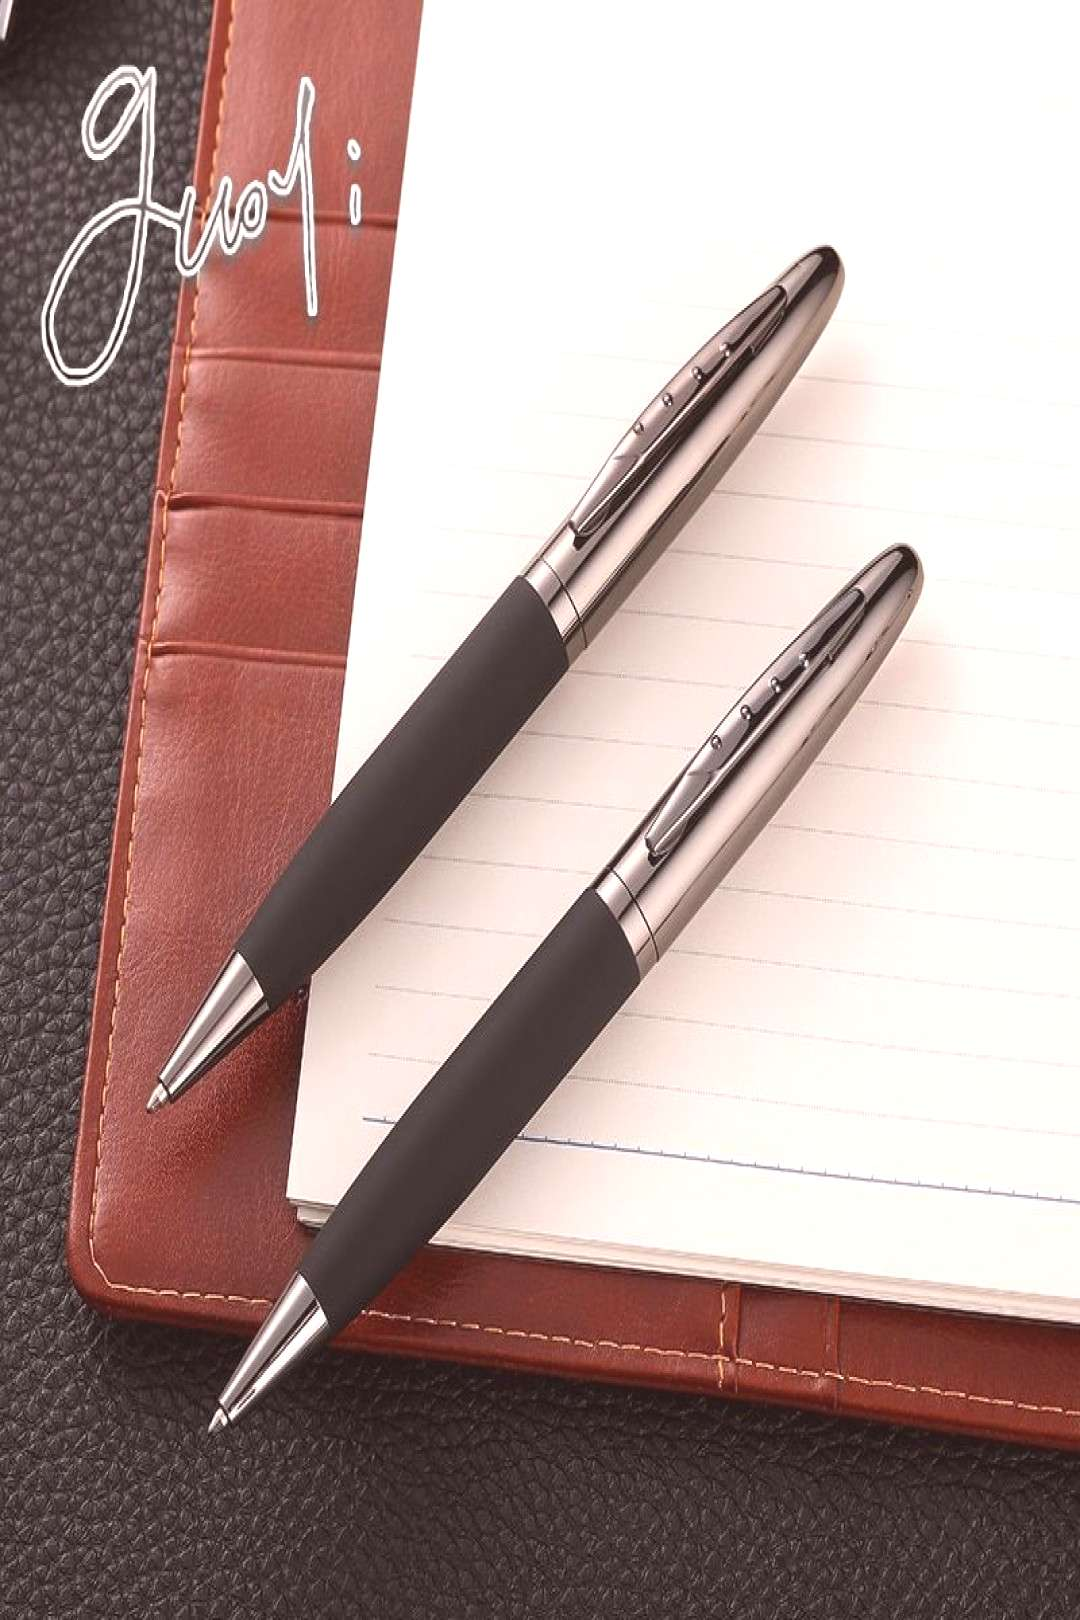 Creative Leather Metal Shell Ballpoint Luxury Business Pen  Starting from $4.29 - Fast Shipping